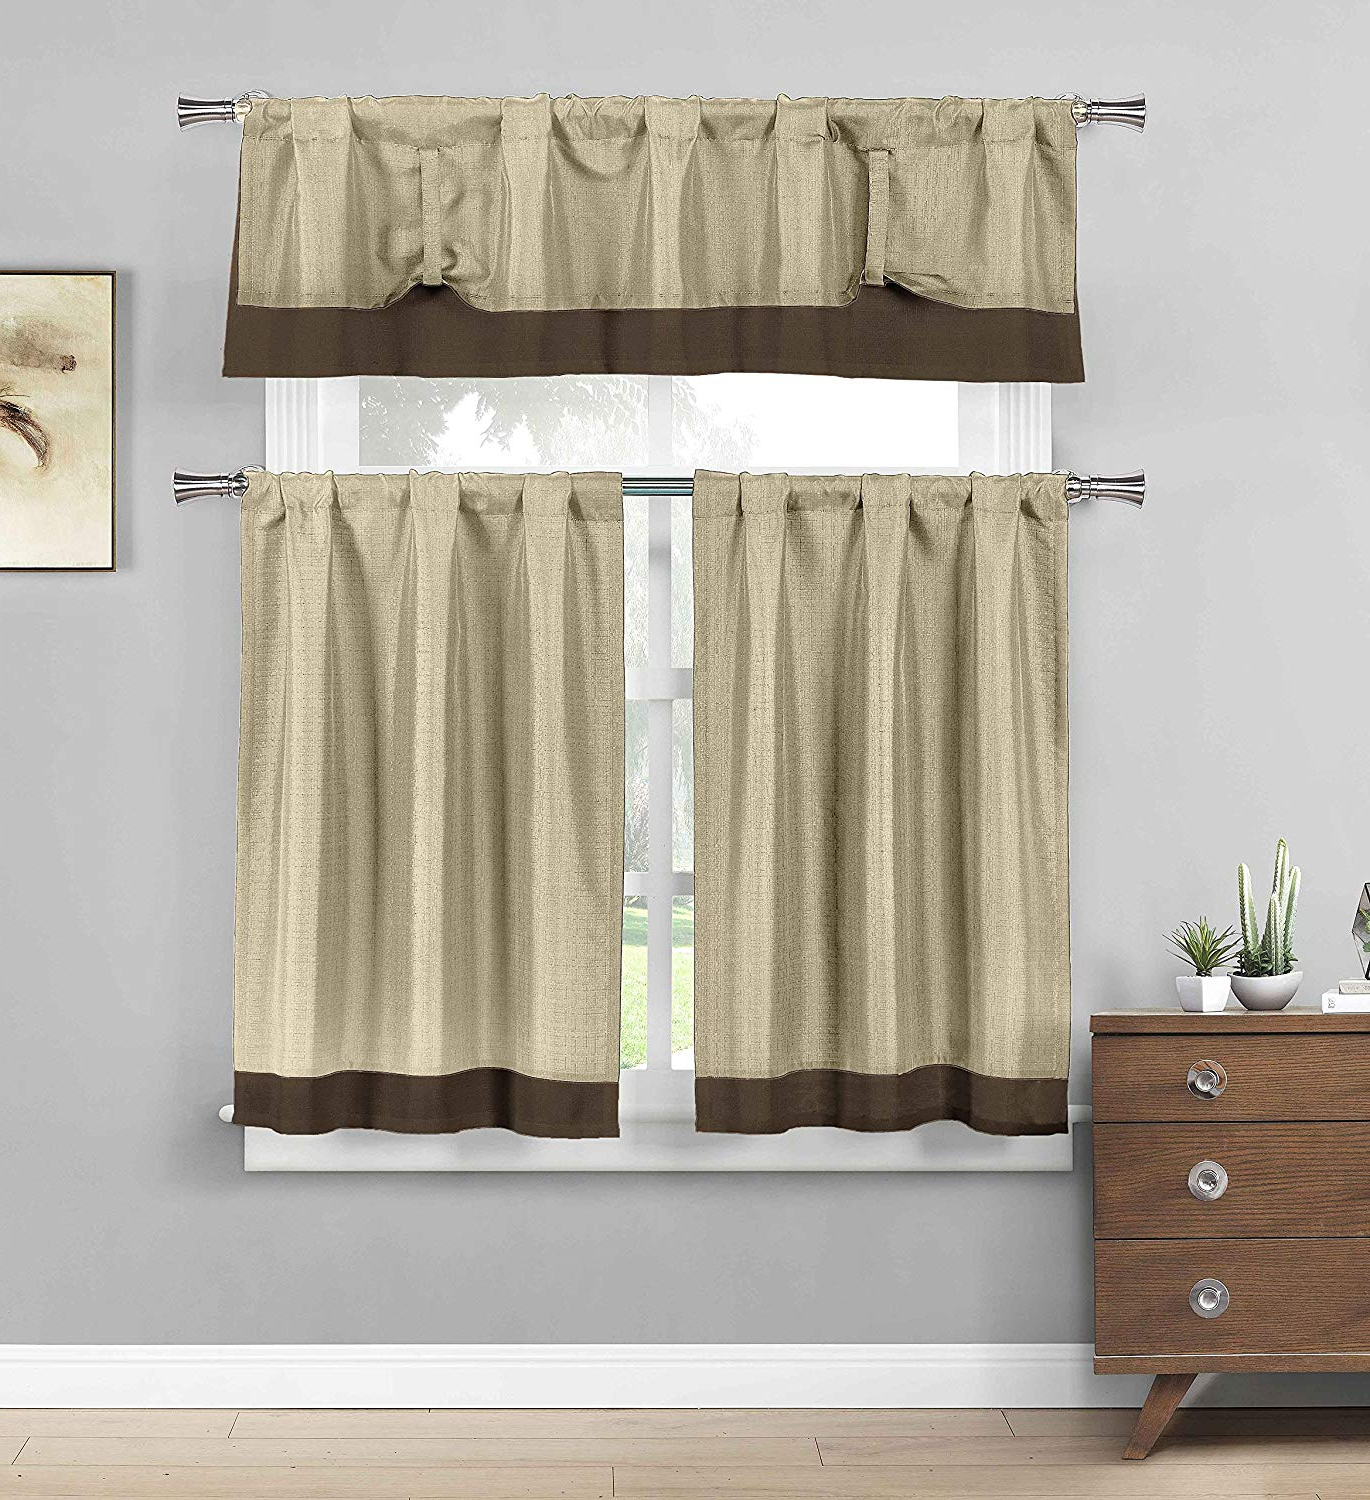 Most Recent Bathroom And More Three Piece Kitchen/cafe Tier Window Curtain Set:  Chocolate Brown Border Accent (Linen) With Regard To Solid Microfiber 3 Piece Kitchen Curtain Valance And Tiers Sets (View 10 of 20)